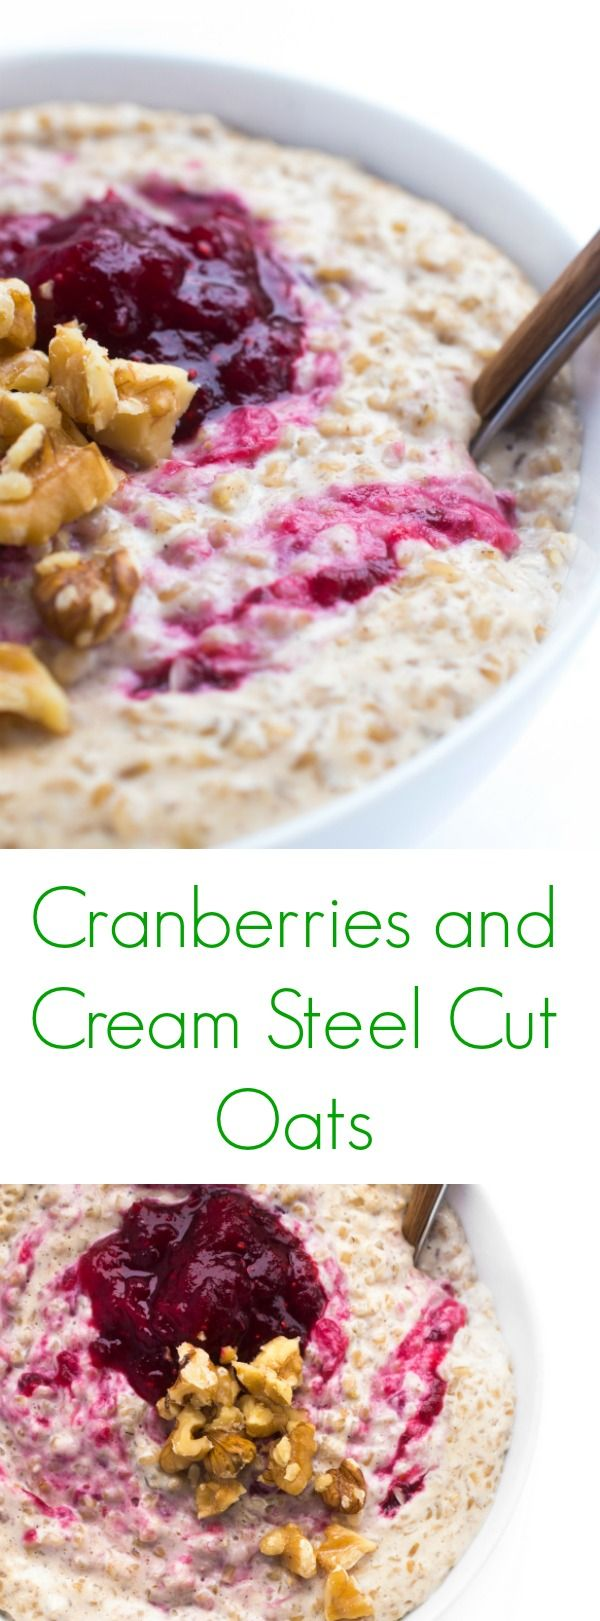 Cranberries and Cream Steel Cut Oats- A sweet tasting dish that will keep you full and staying healthy!